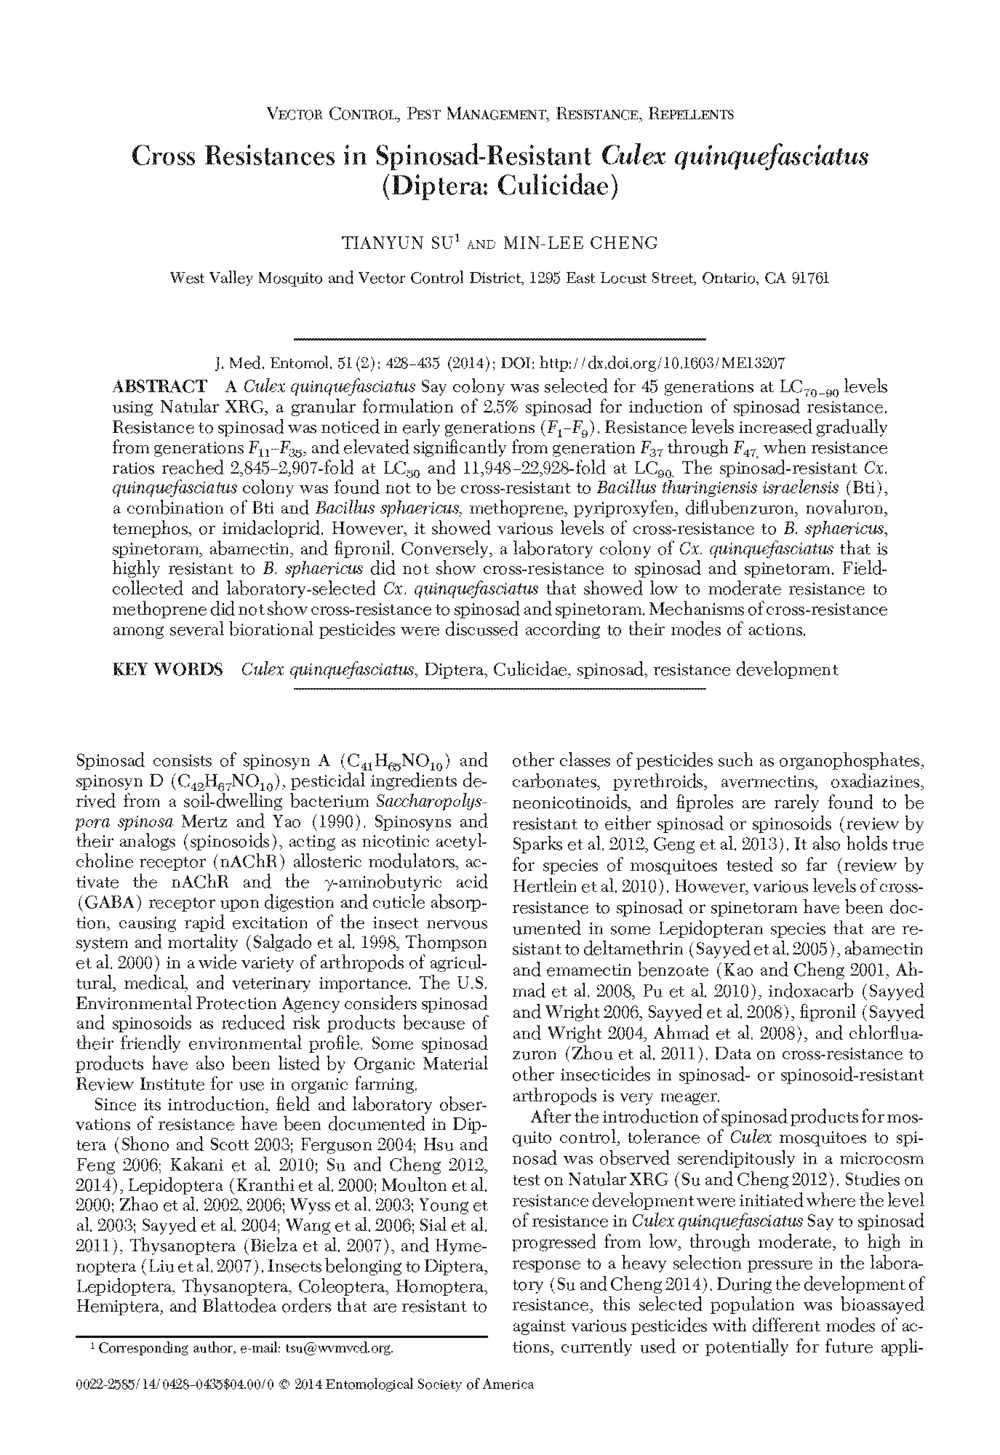 Cross R in spinosad R-JME Vol. 51 PP. 428-435_Page_1.png